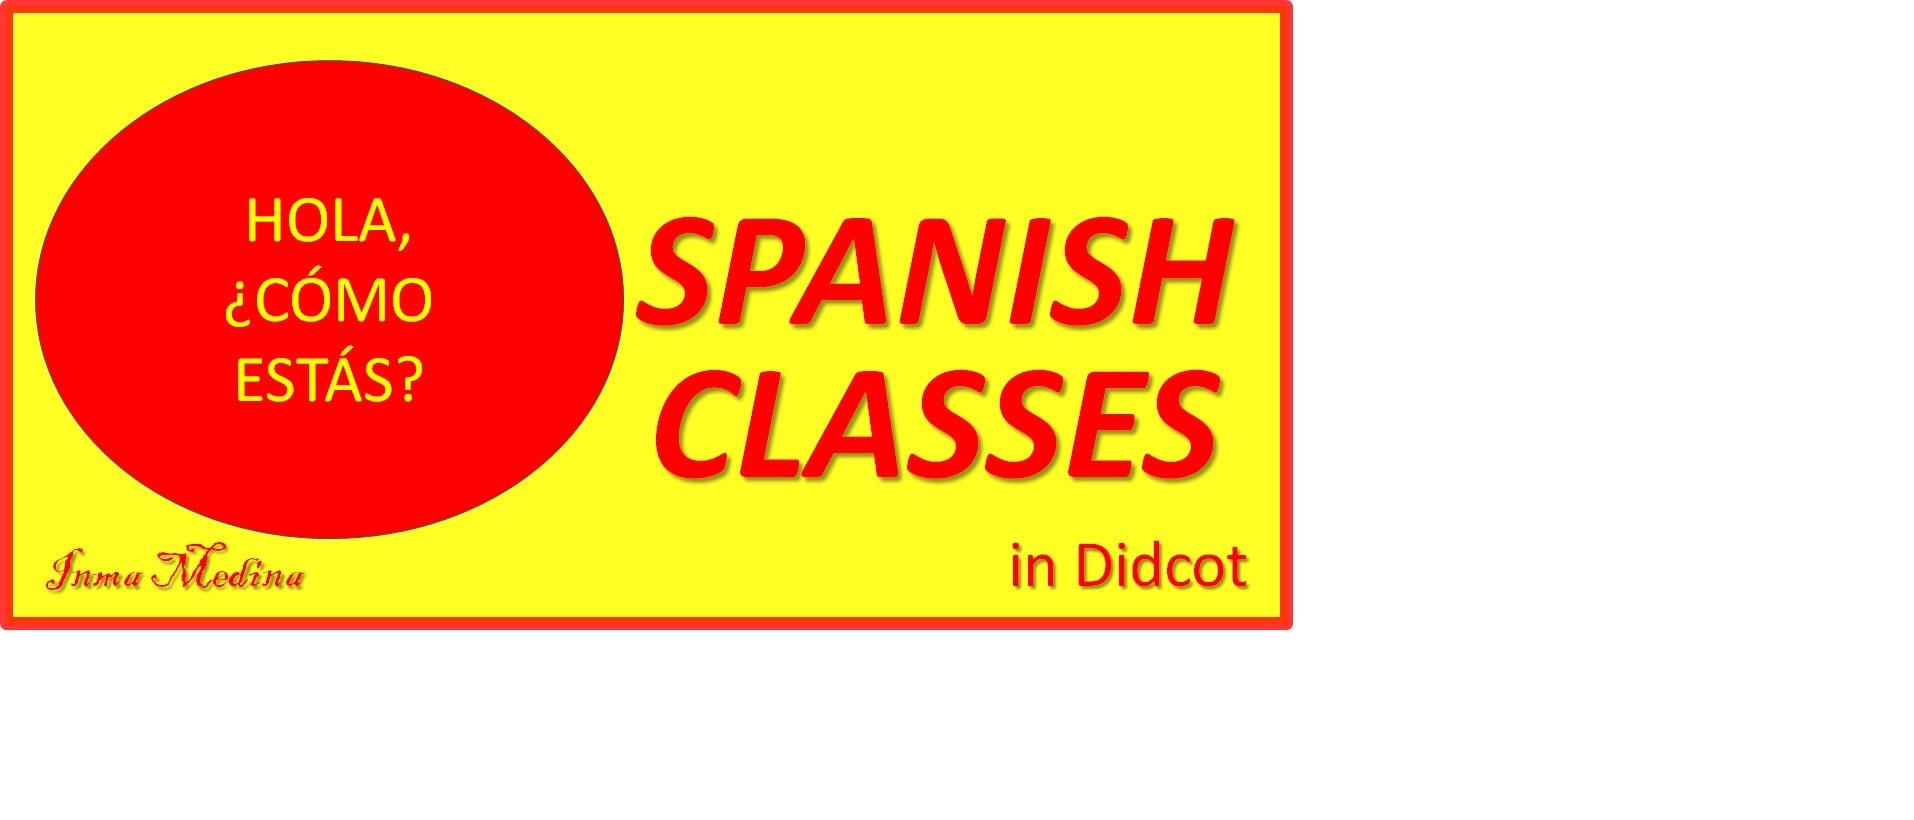 Spanish Classes in Didcot.